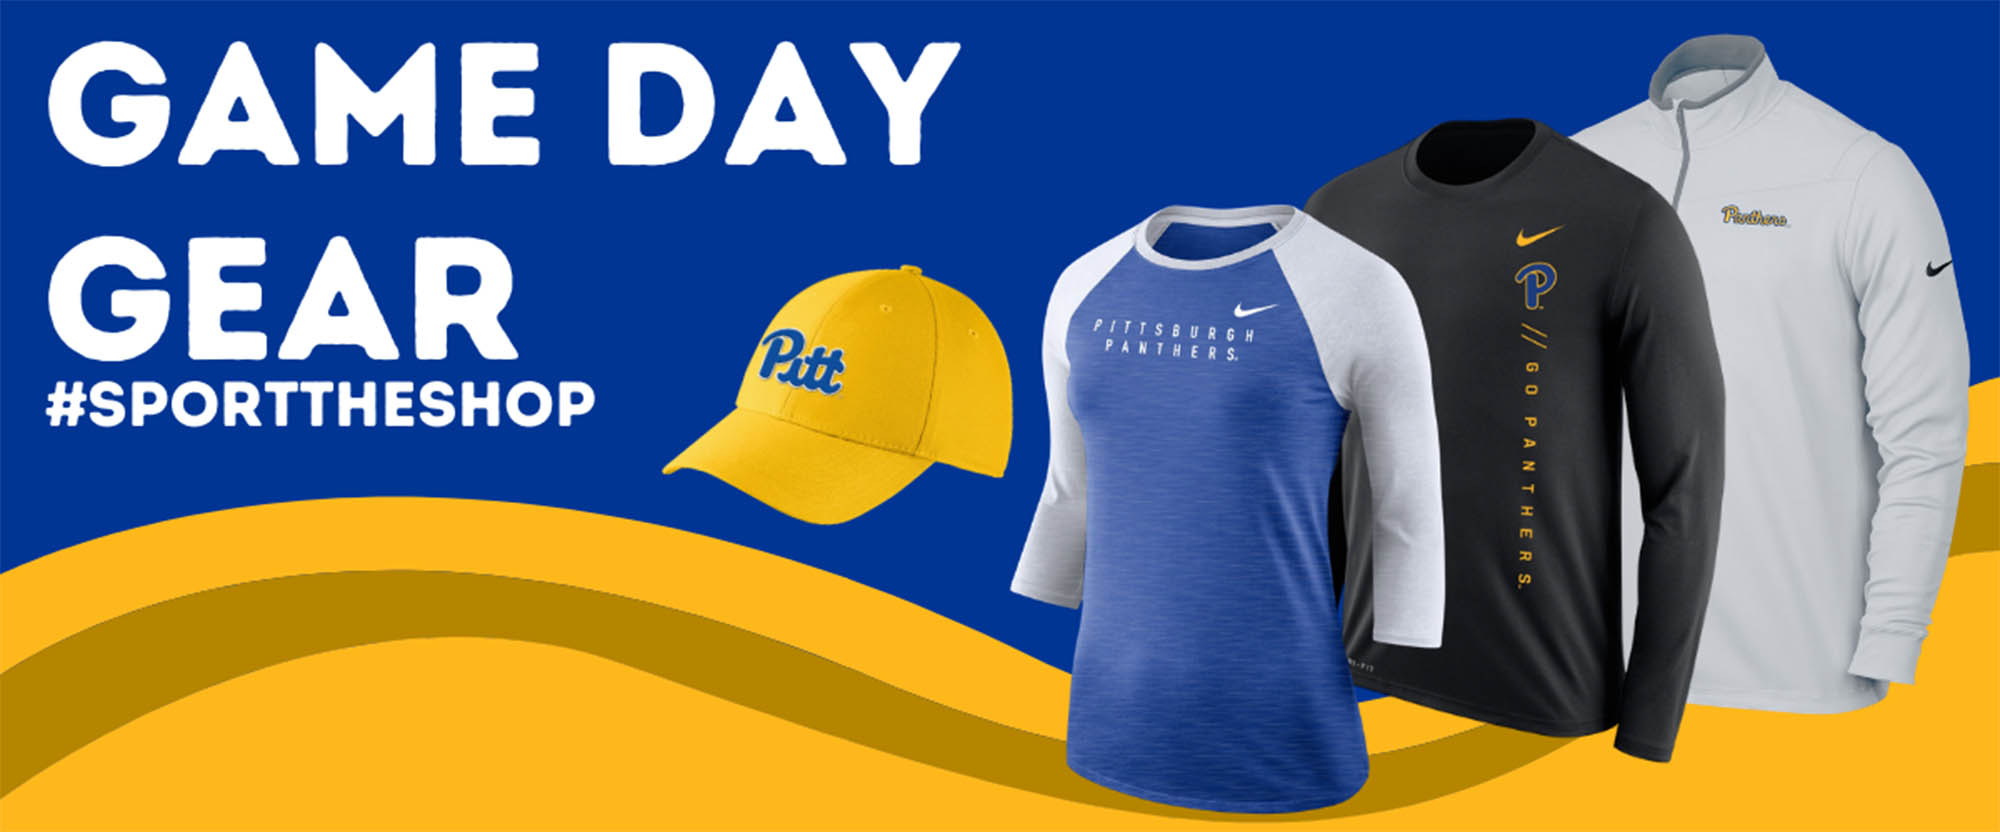 get your gameday gear